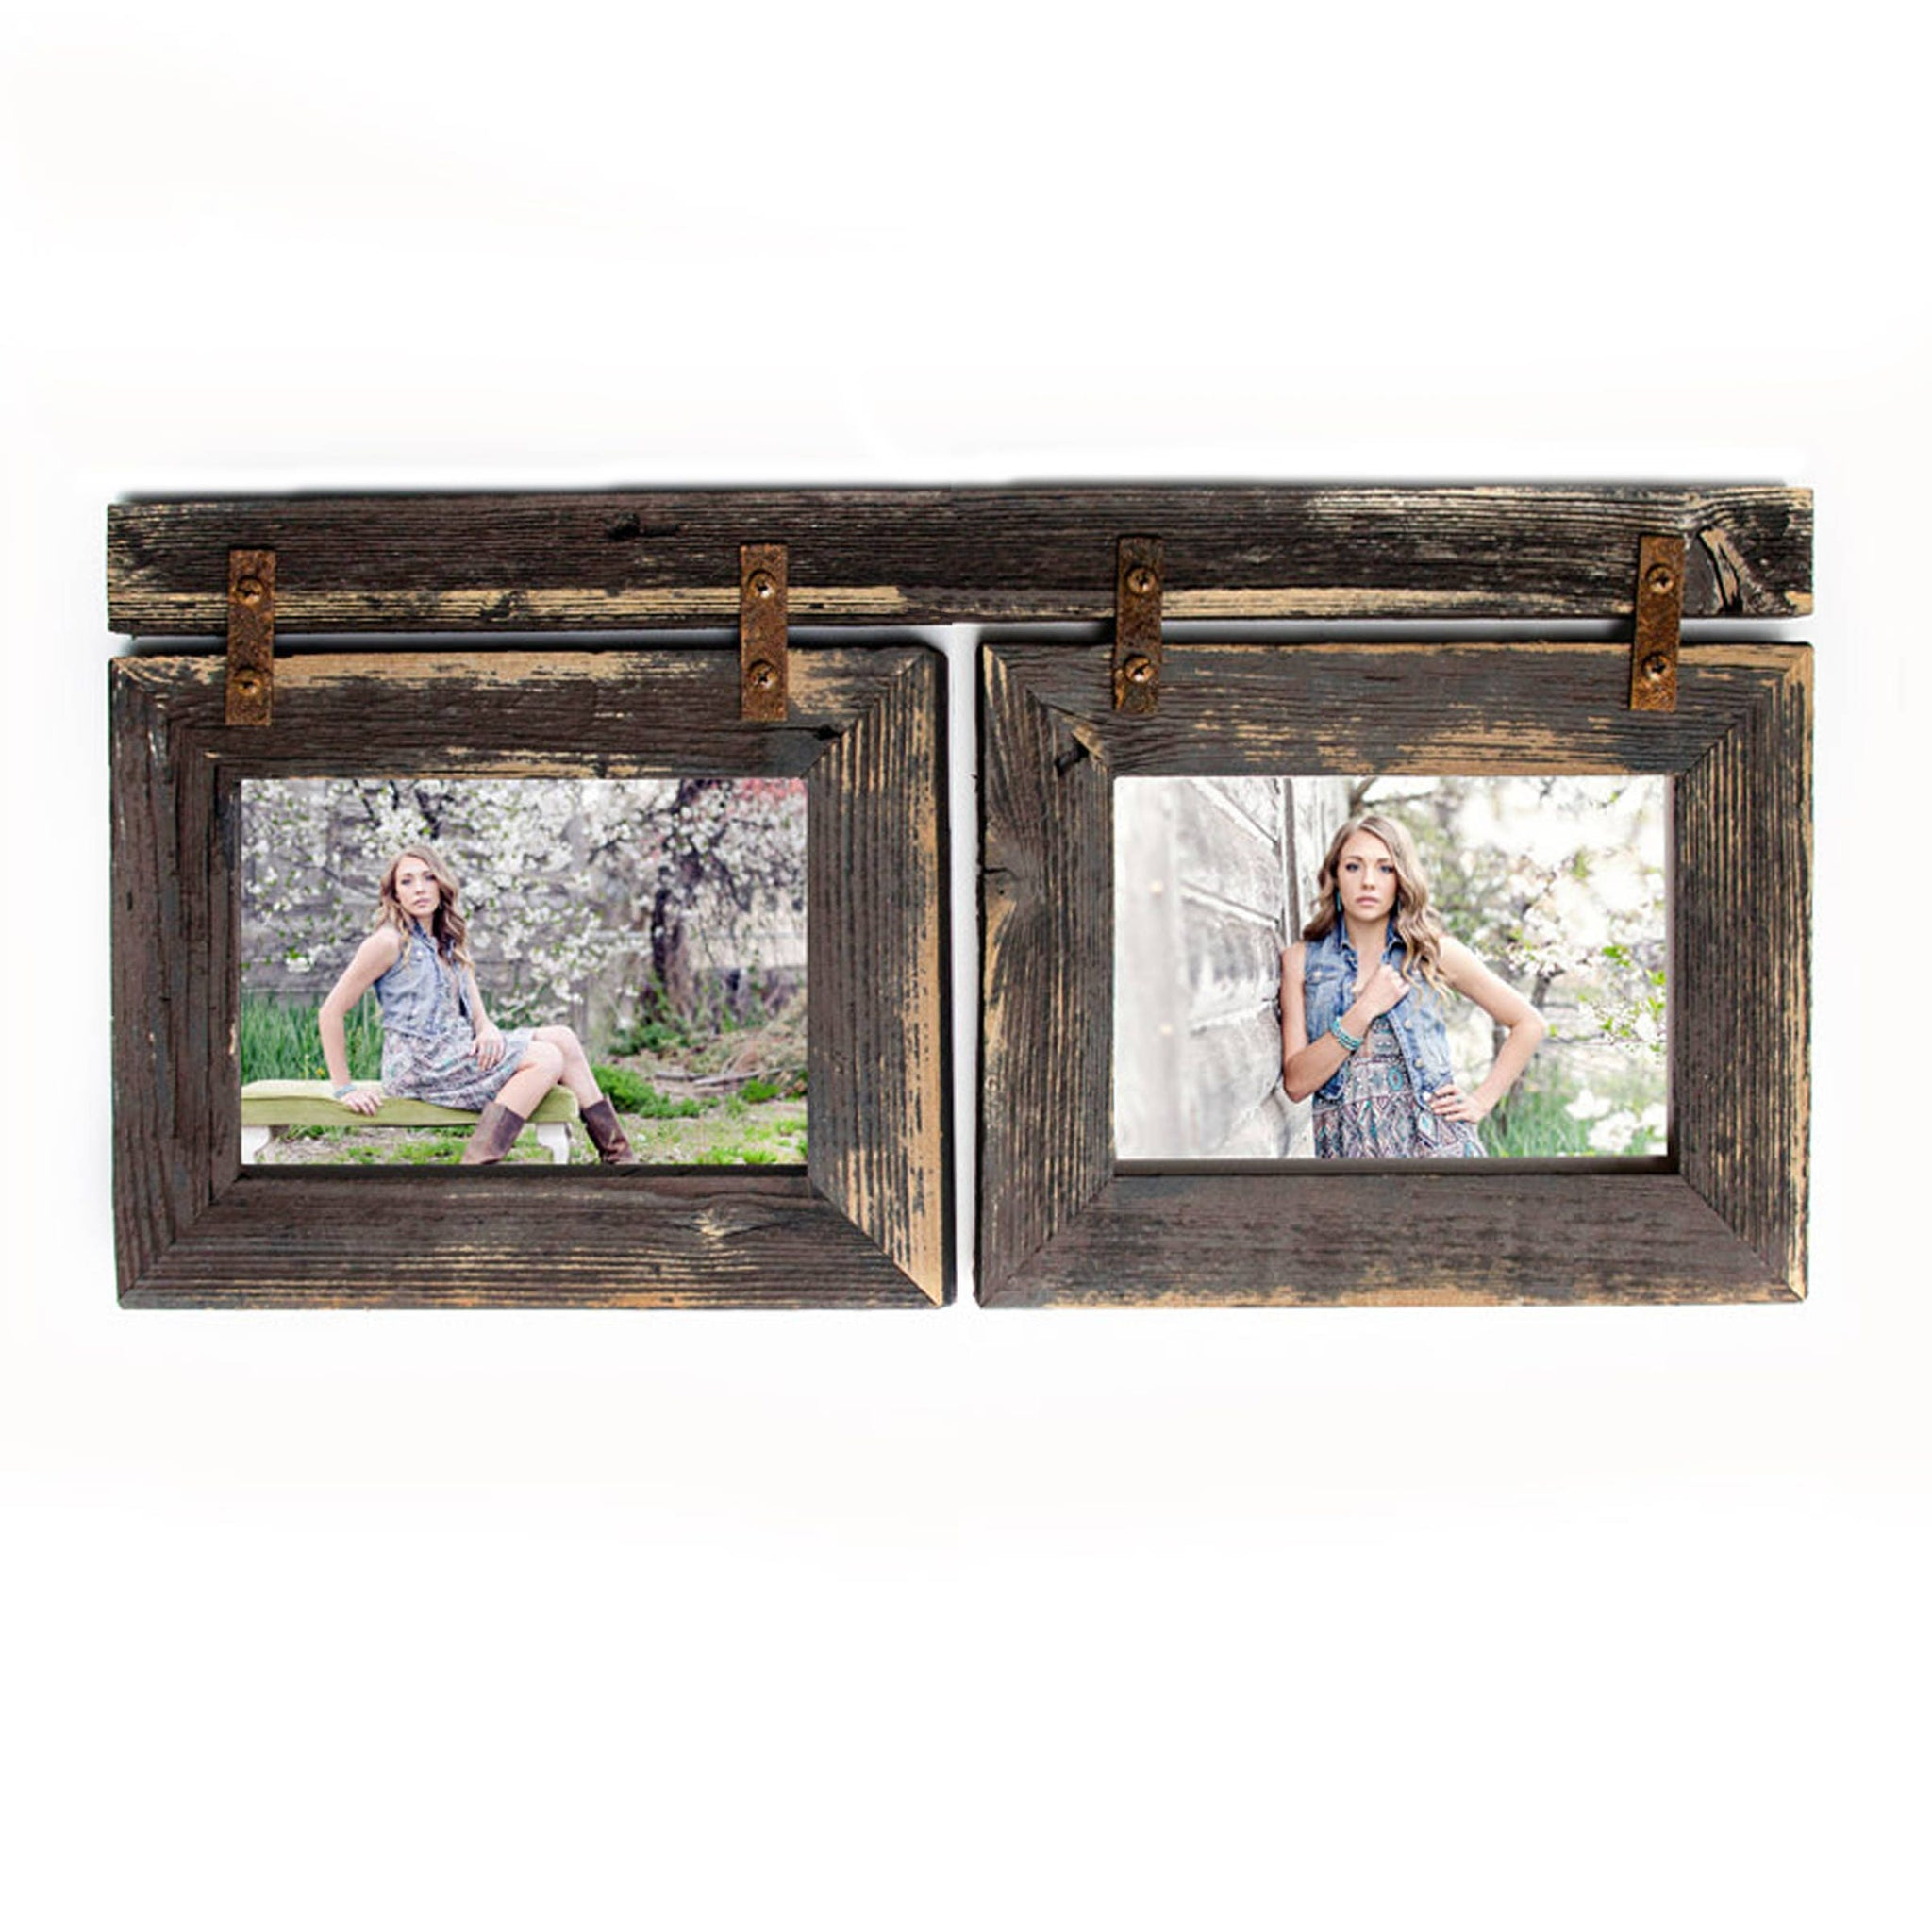 4x6 Barnwood Collage Picture Frame 2) 4x6 Multi Opening Frame-Rustic ...